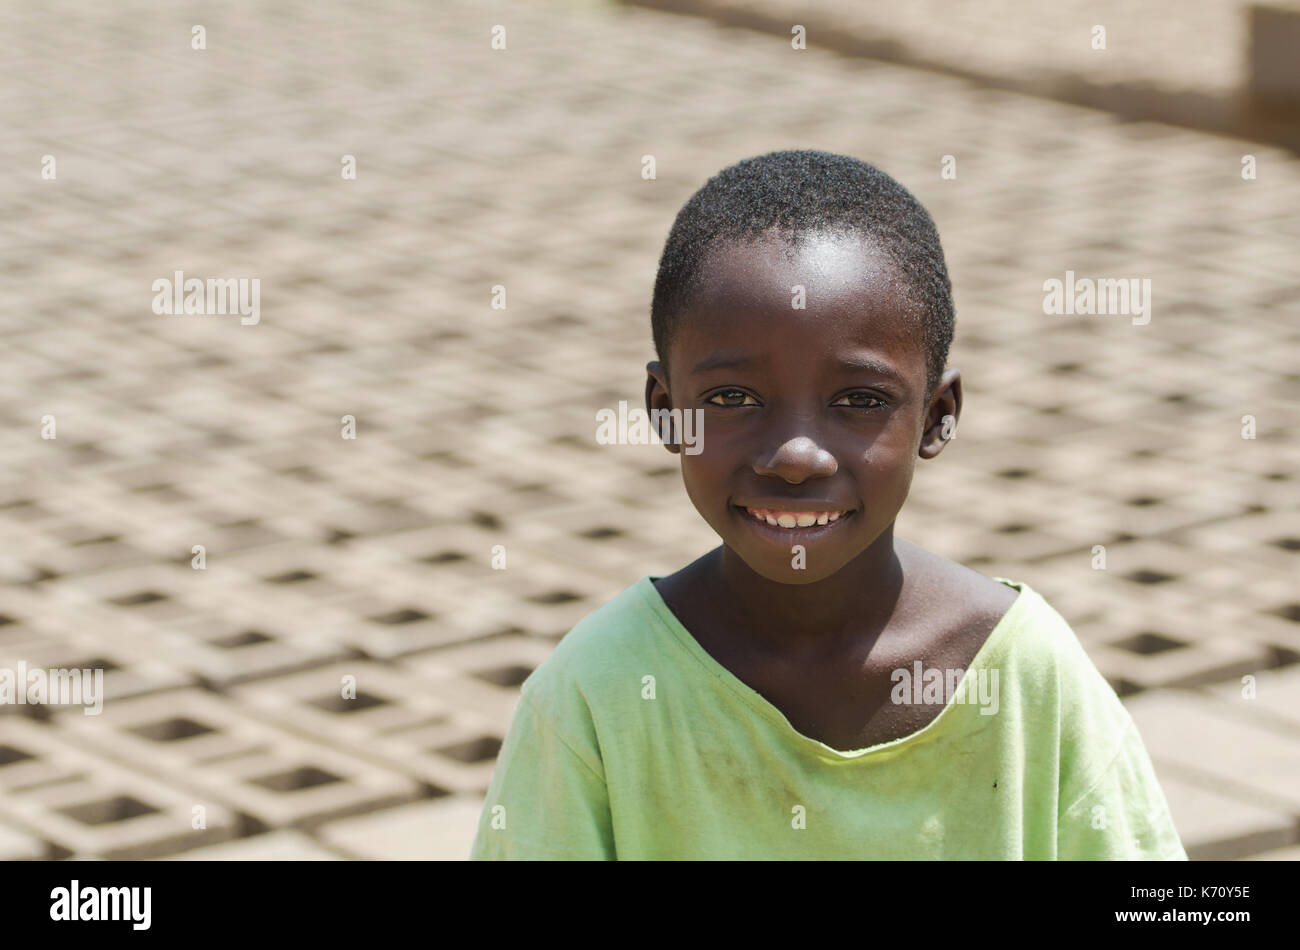 Little African child smiling outdoors behind bricks - Child Labour concept - Stock Image